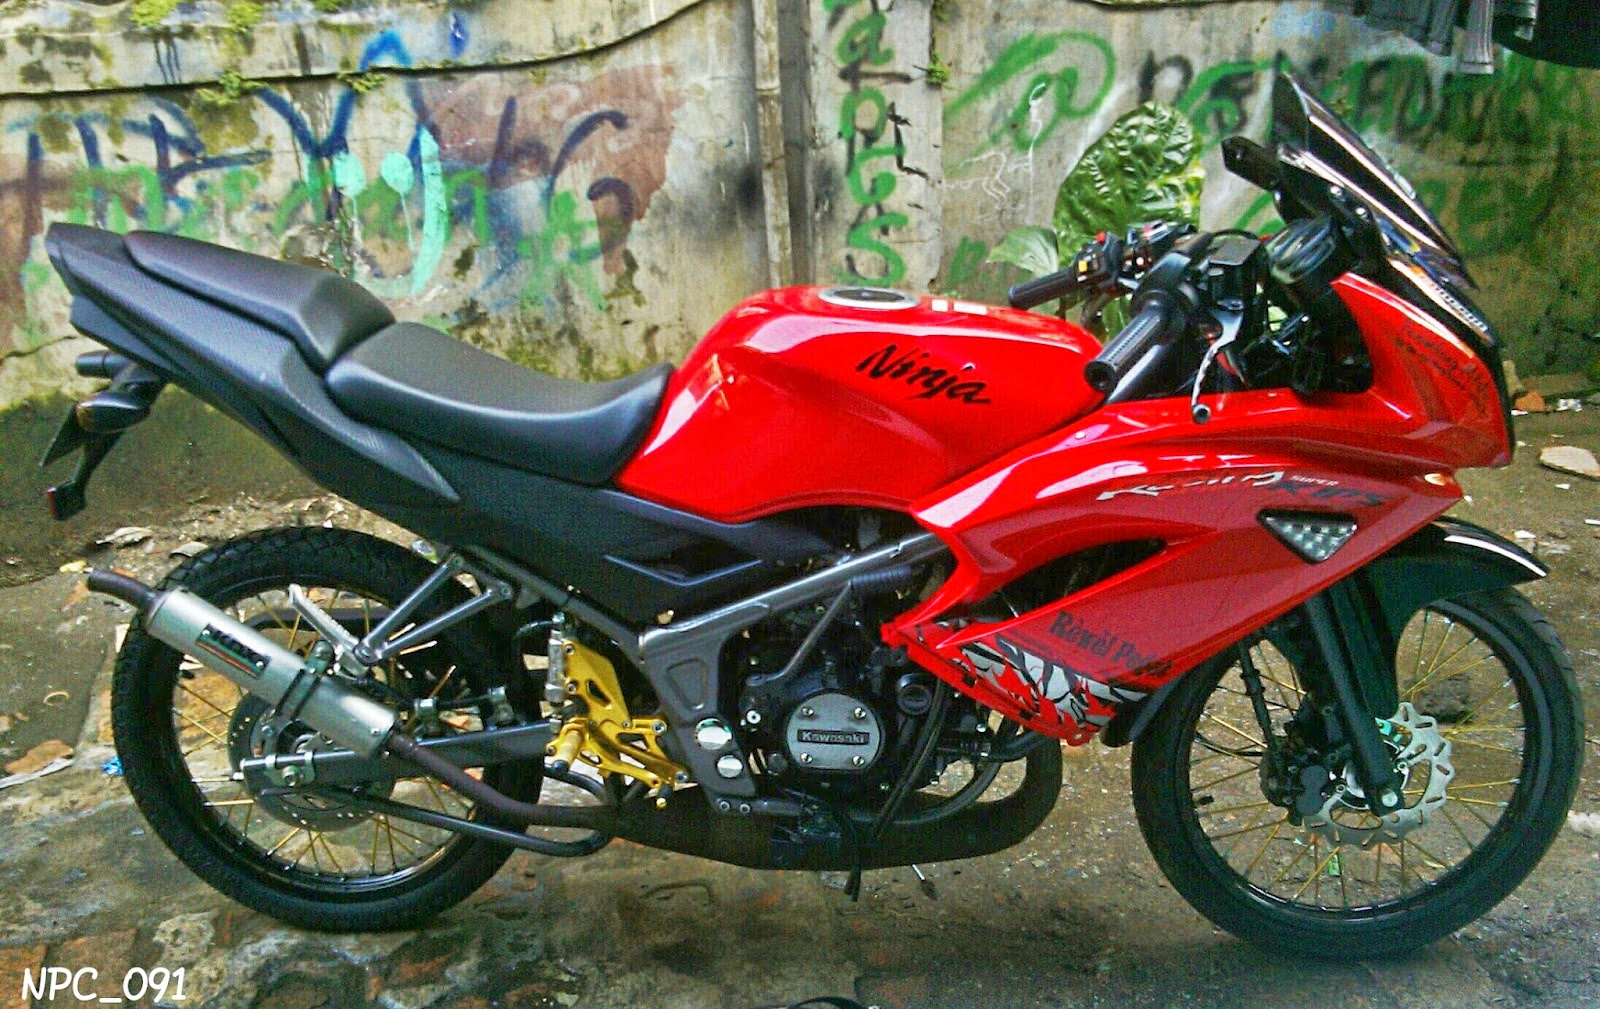 Ninja-R-150-Modifikasi-Drag-modifikasi-ninja-r-150-l-5225-dsc.jpg